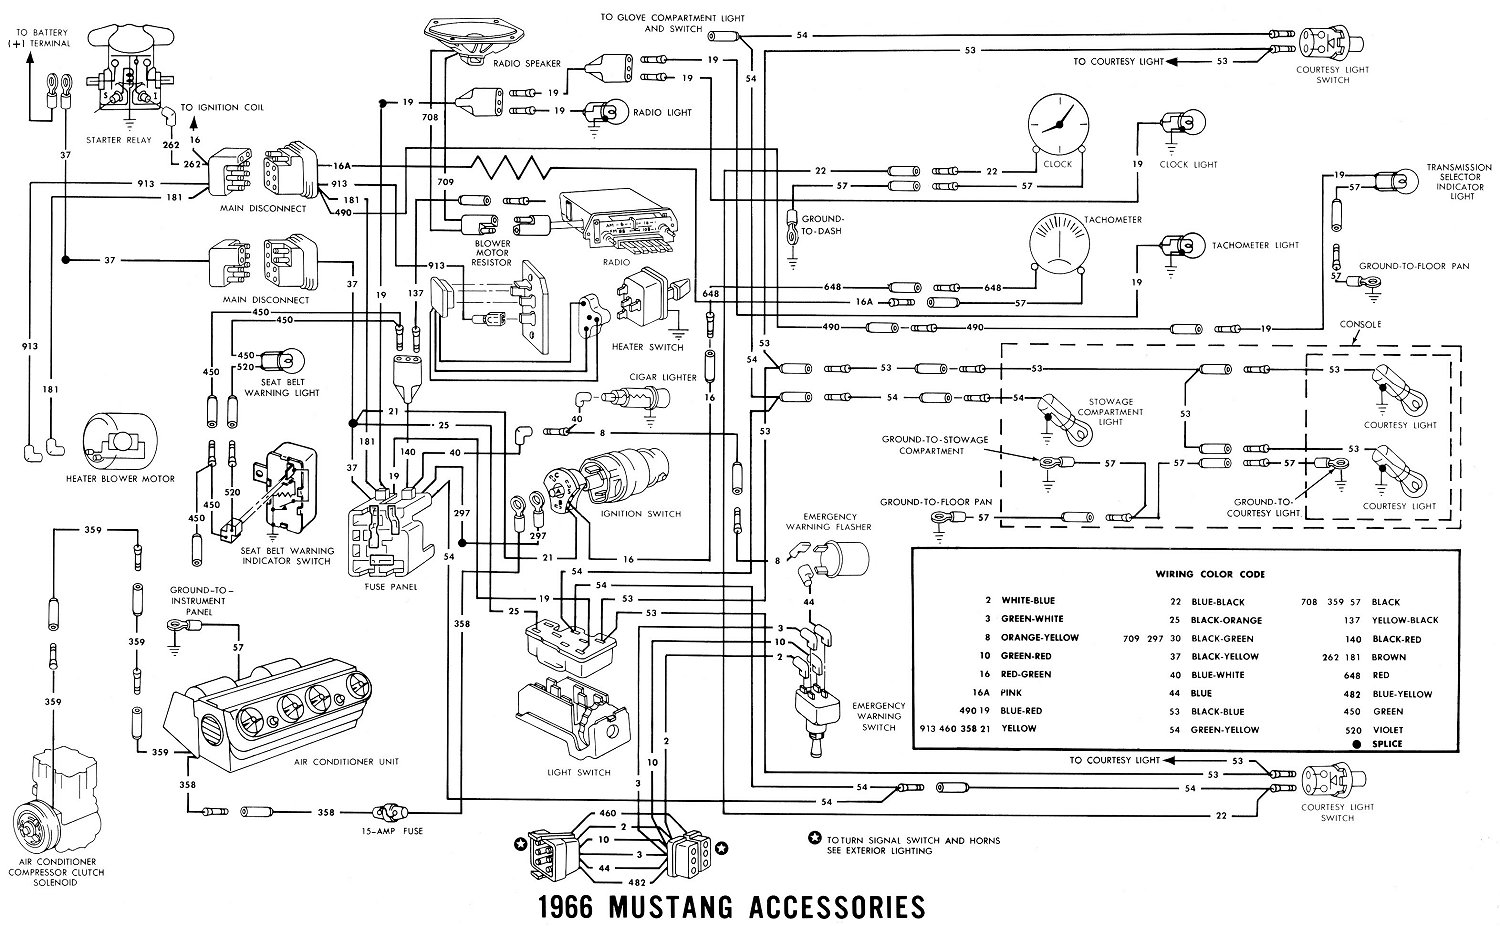 Acces on 2007 Ford Escape Radio Wiring Diagram